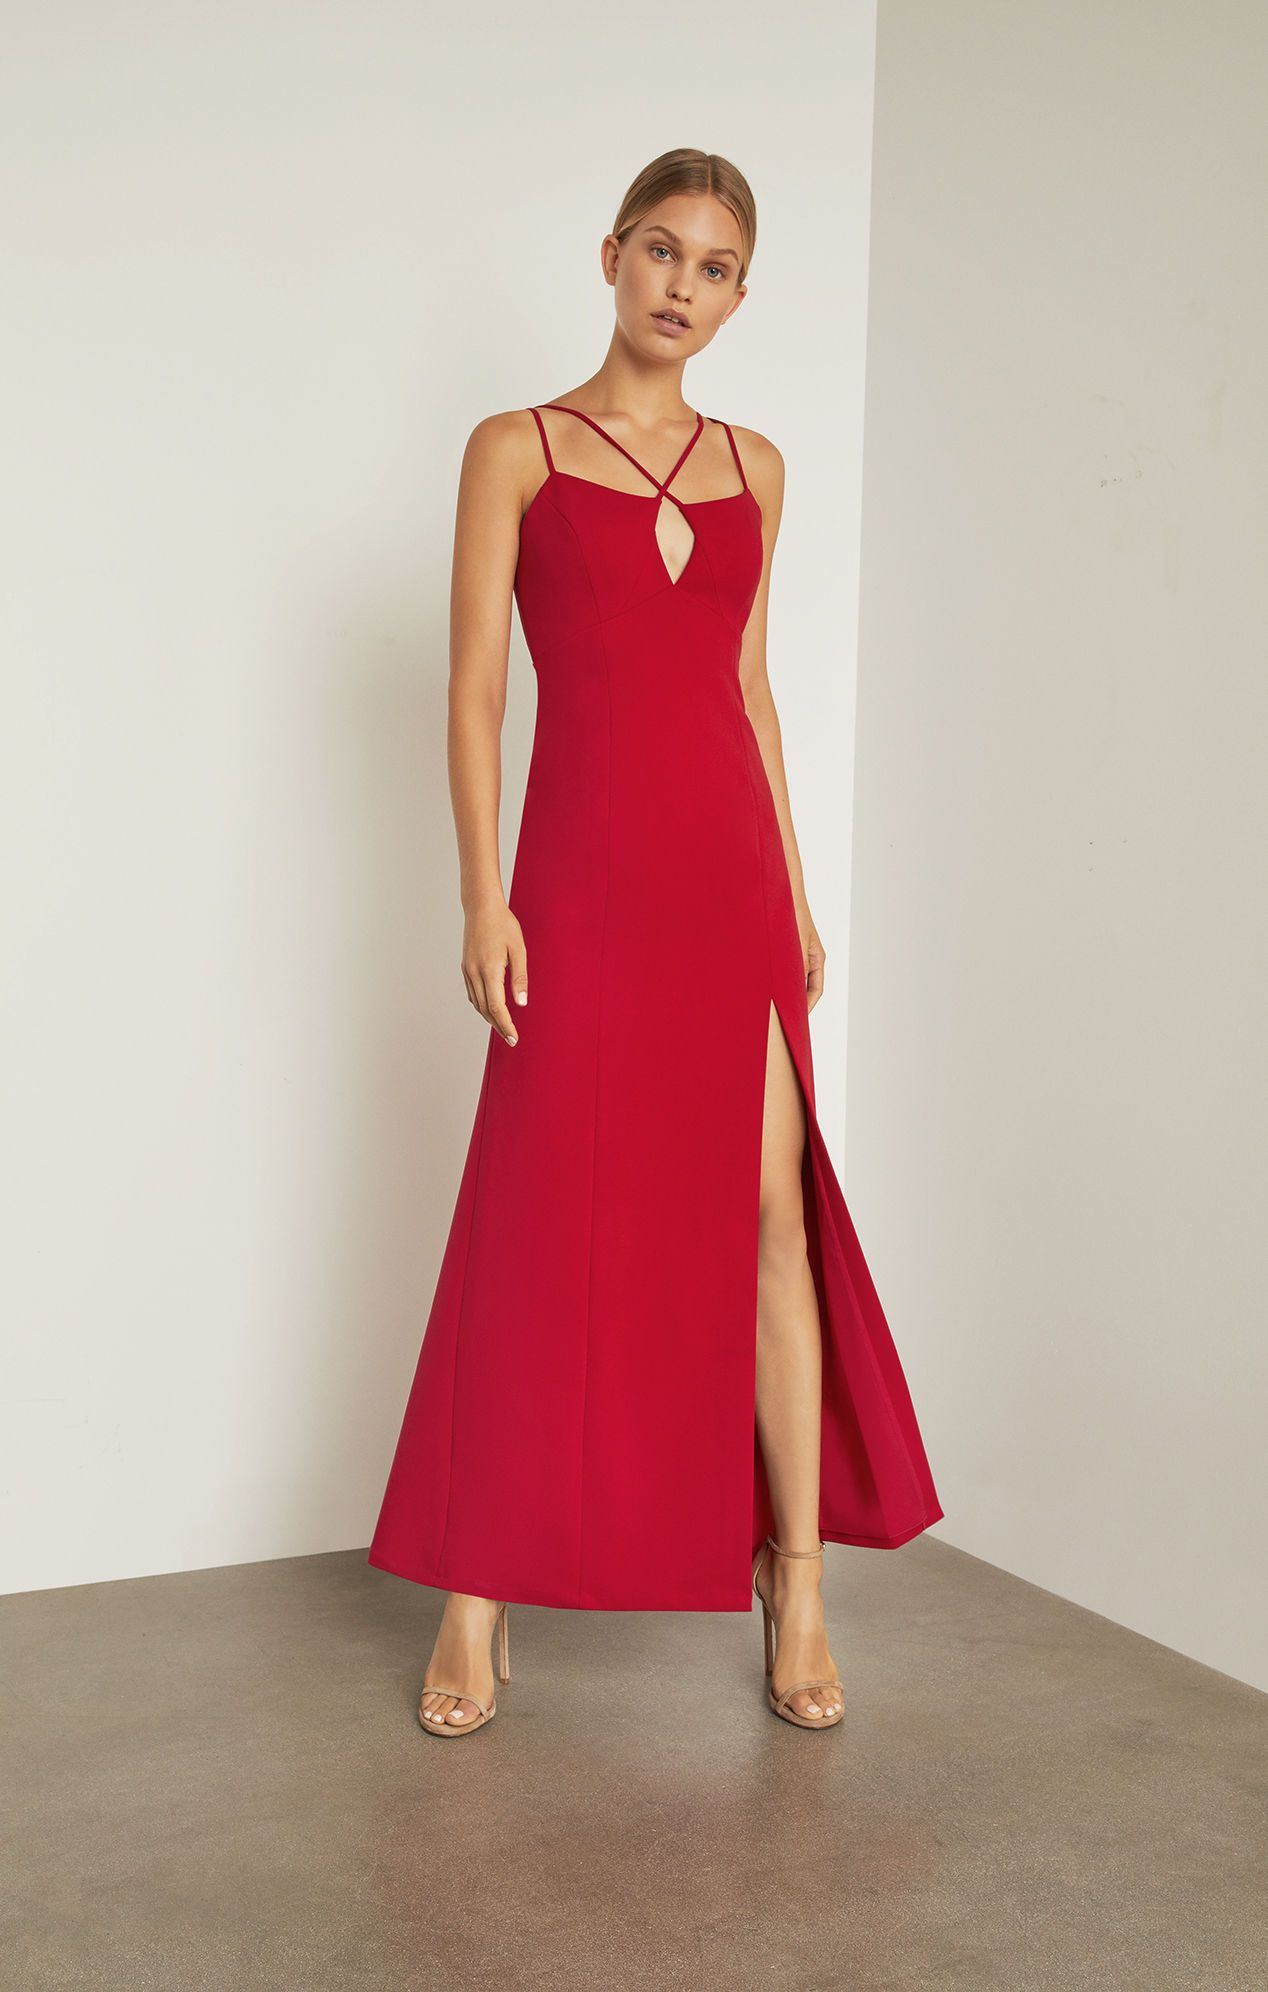 317265bfab54d4 Keyhole Strappy Gown - Red | BCBG.com | Red Carpet Dresses | Keyhole ...